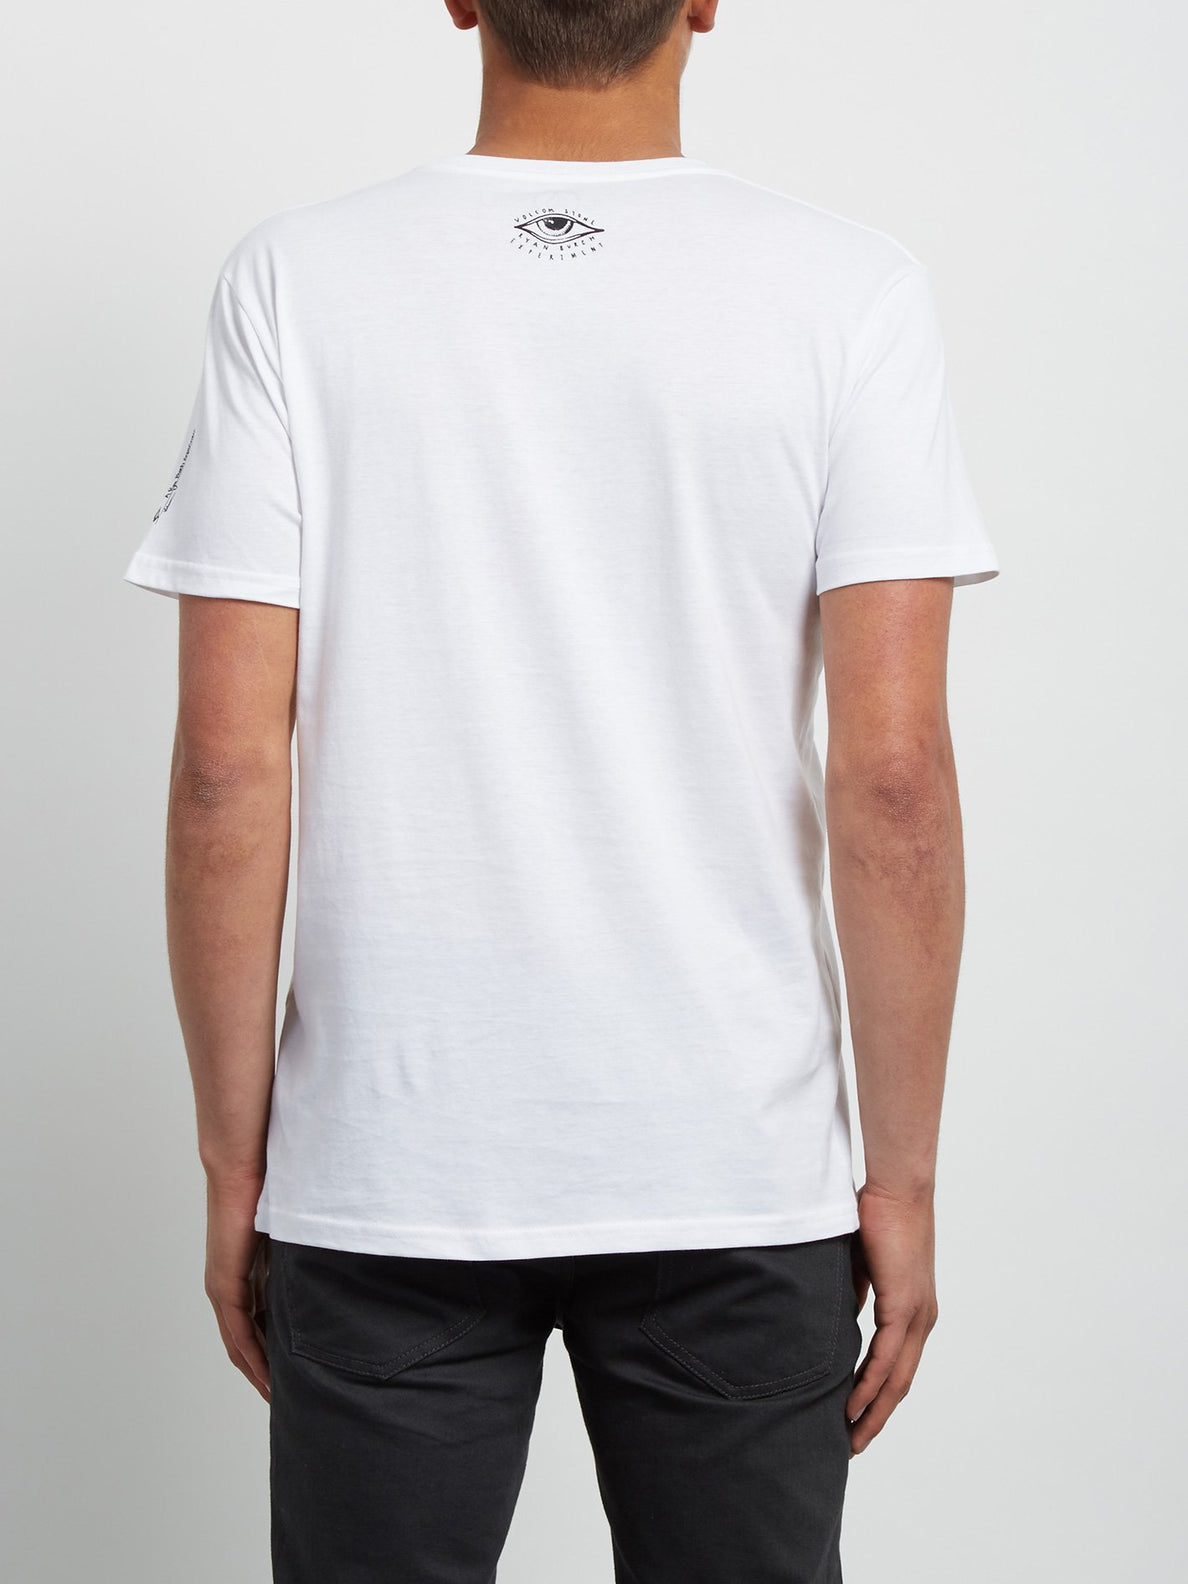 Burch Fom Short Sleeve Tee - White